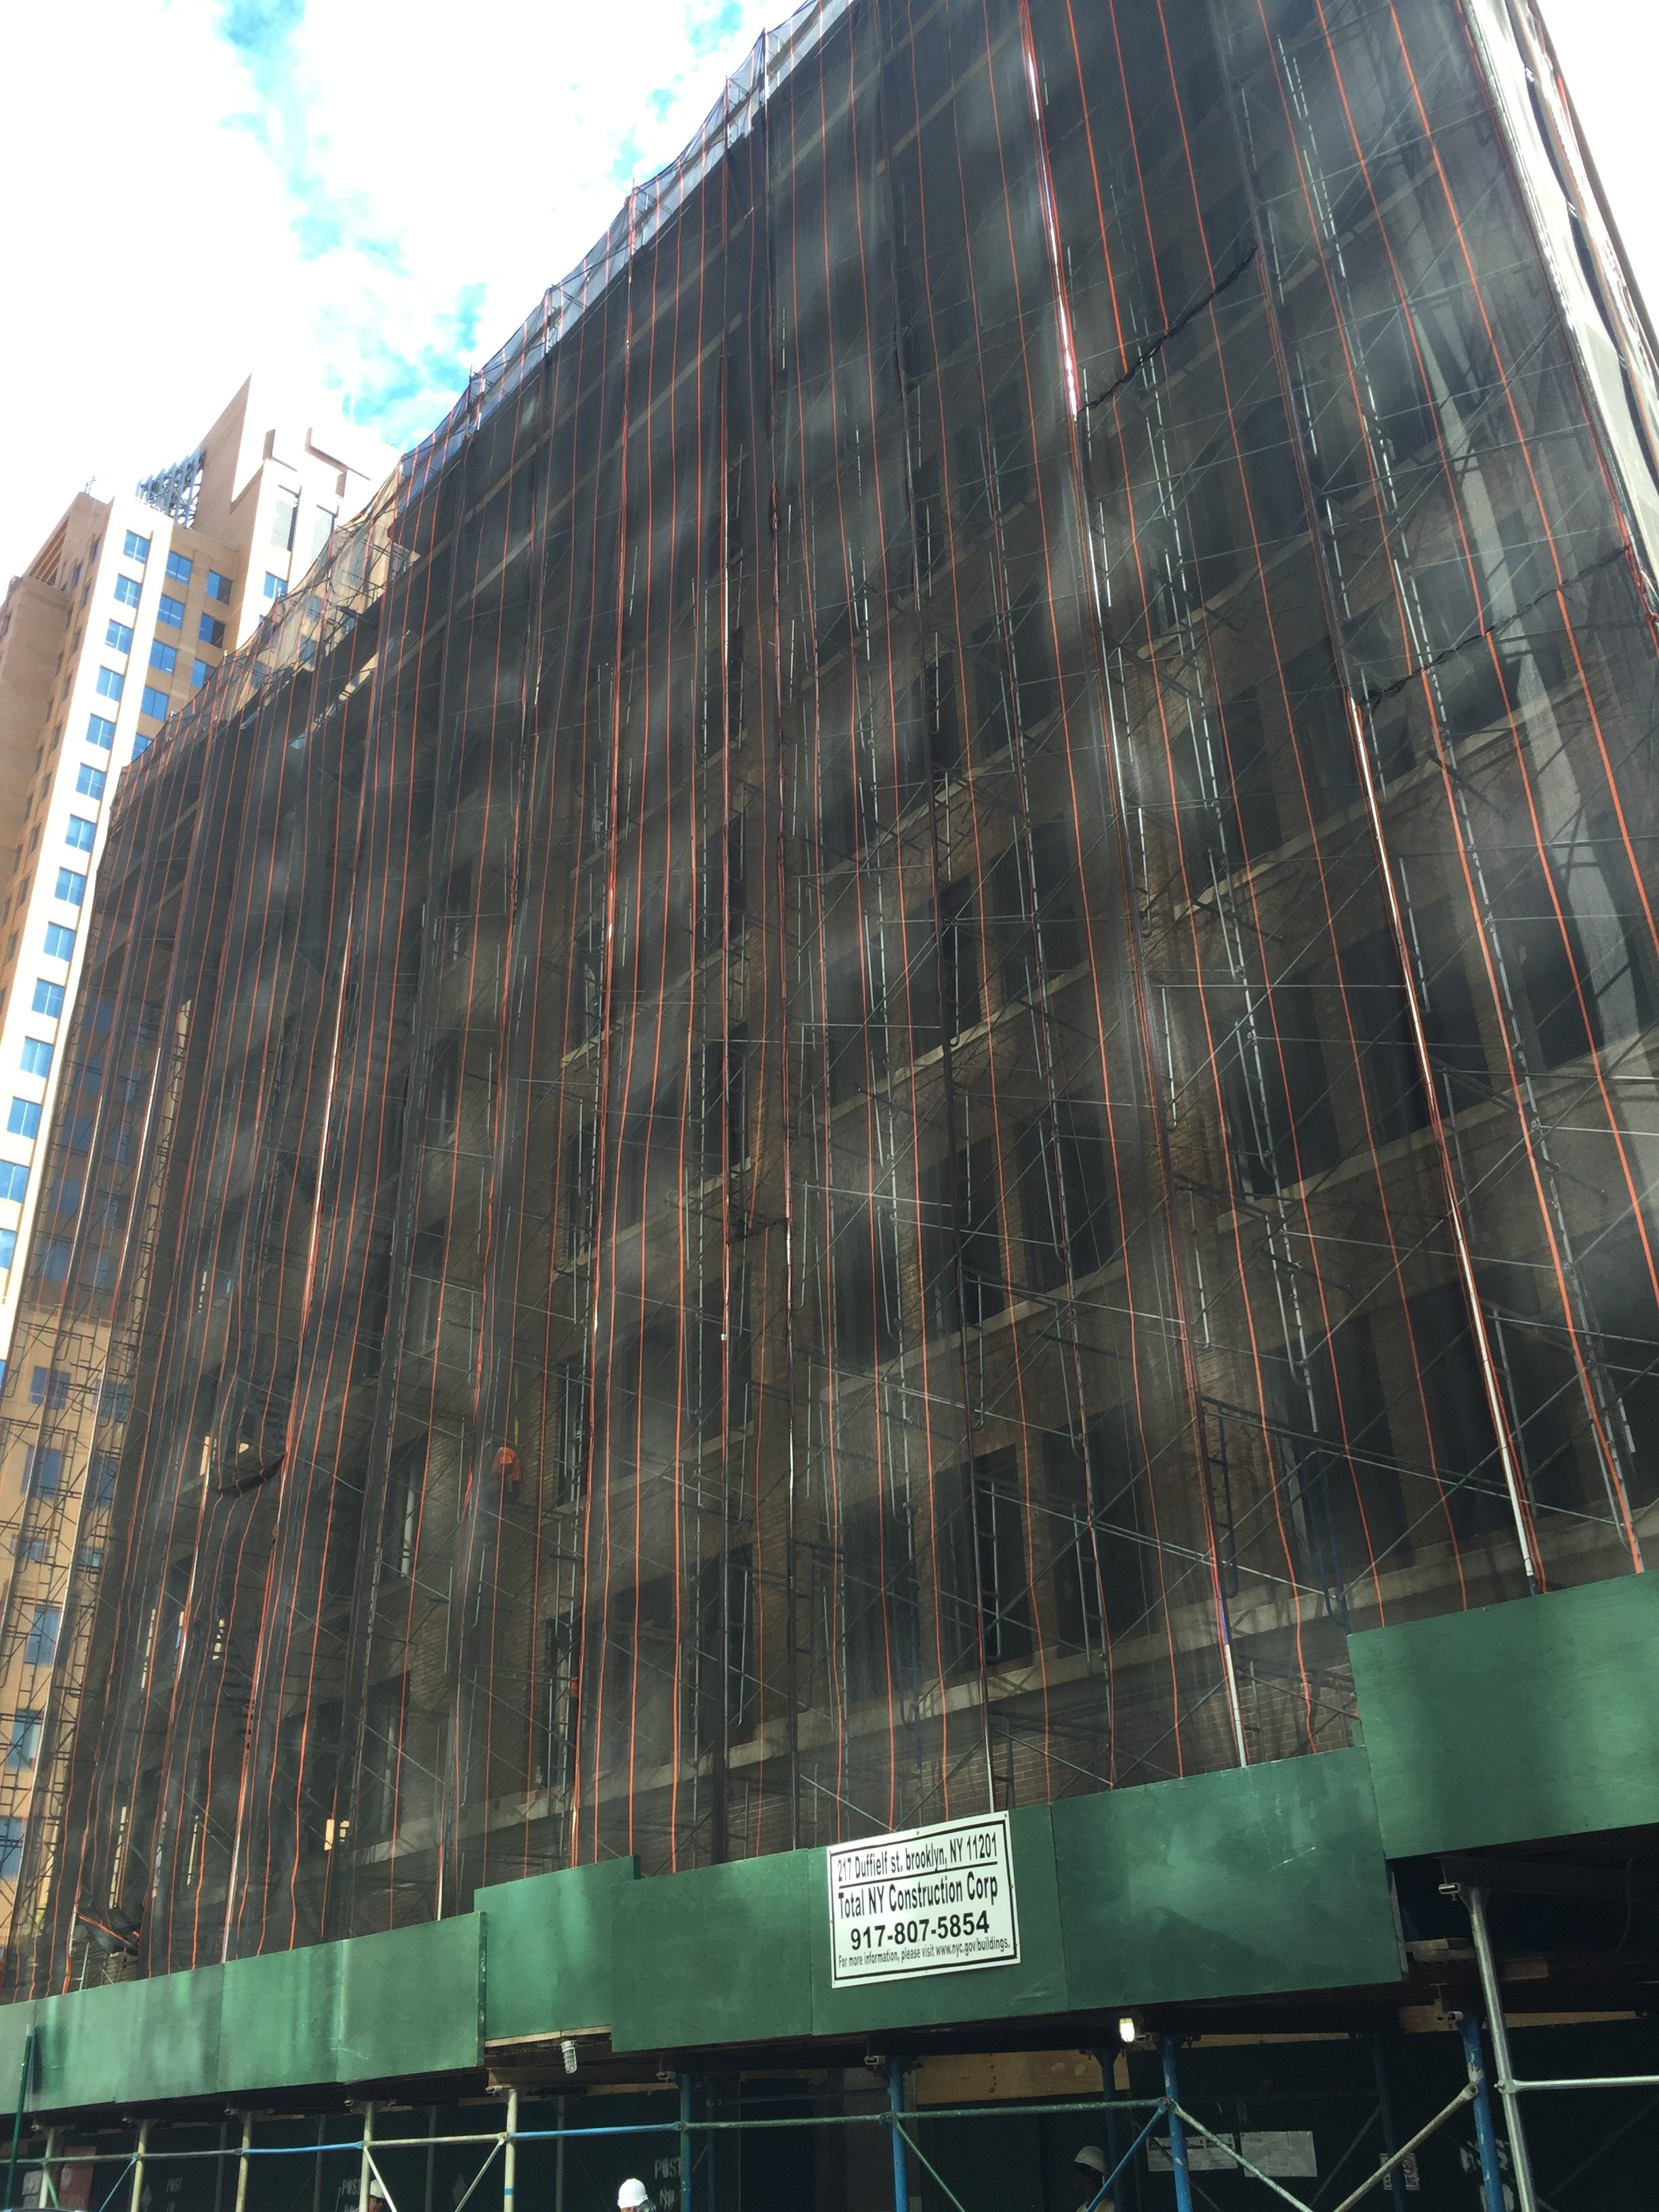 217 Duffield Street shrouded in scaffolding, photo by Tectonic